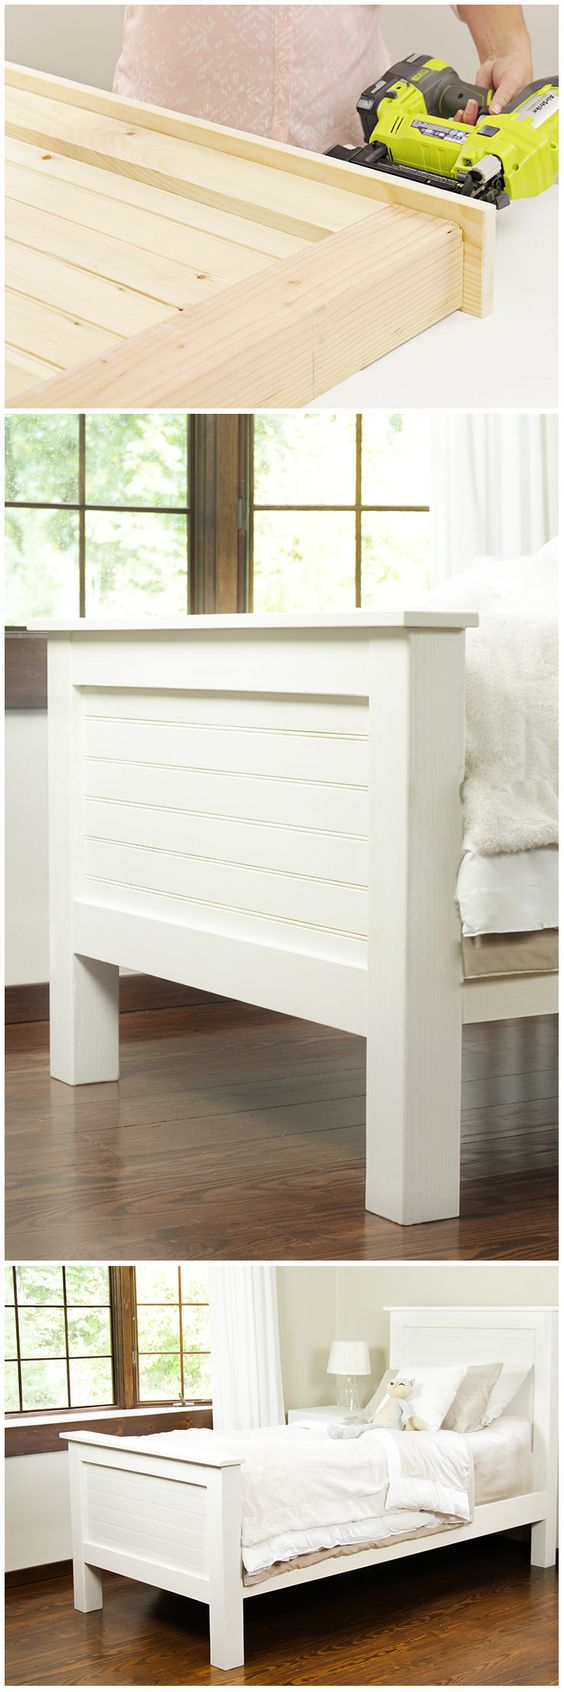 This DIY bed frame made from tongue and groove pattern stock board would be a charming addition to your bedroom. We'll show you how to make it. See our step-by-step DIY instructions on The Home Depot Blog.